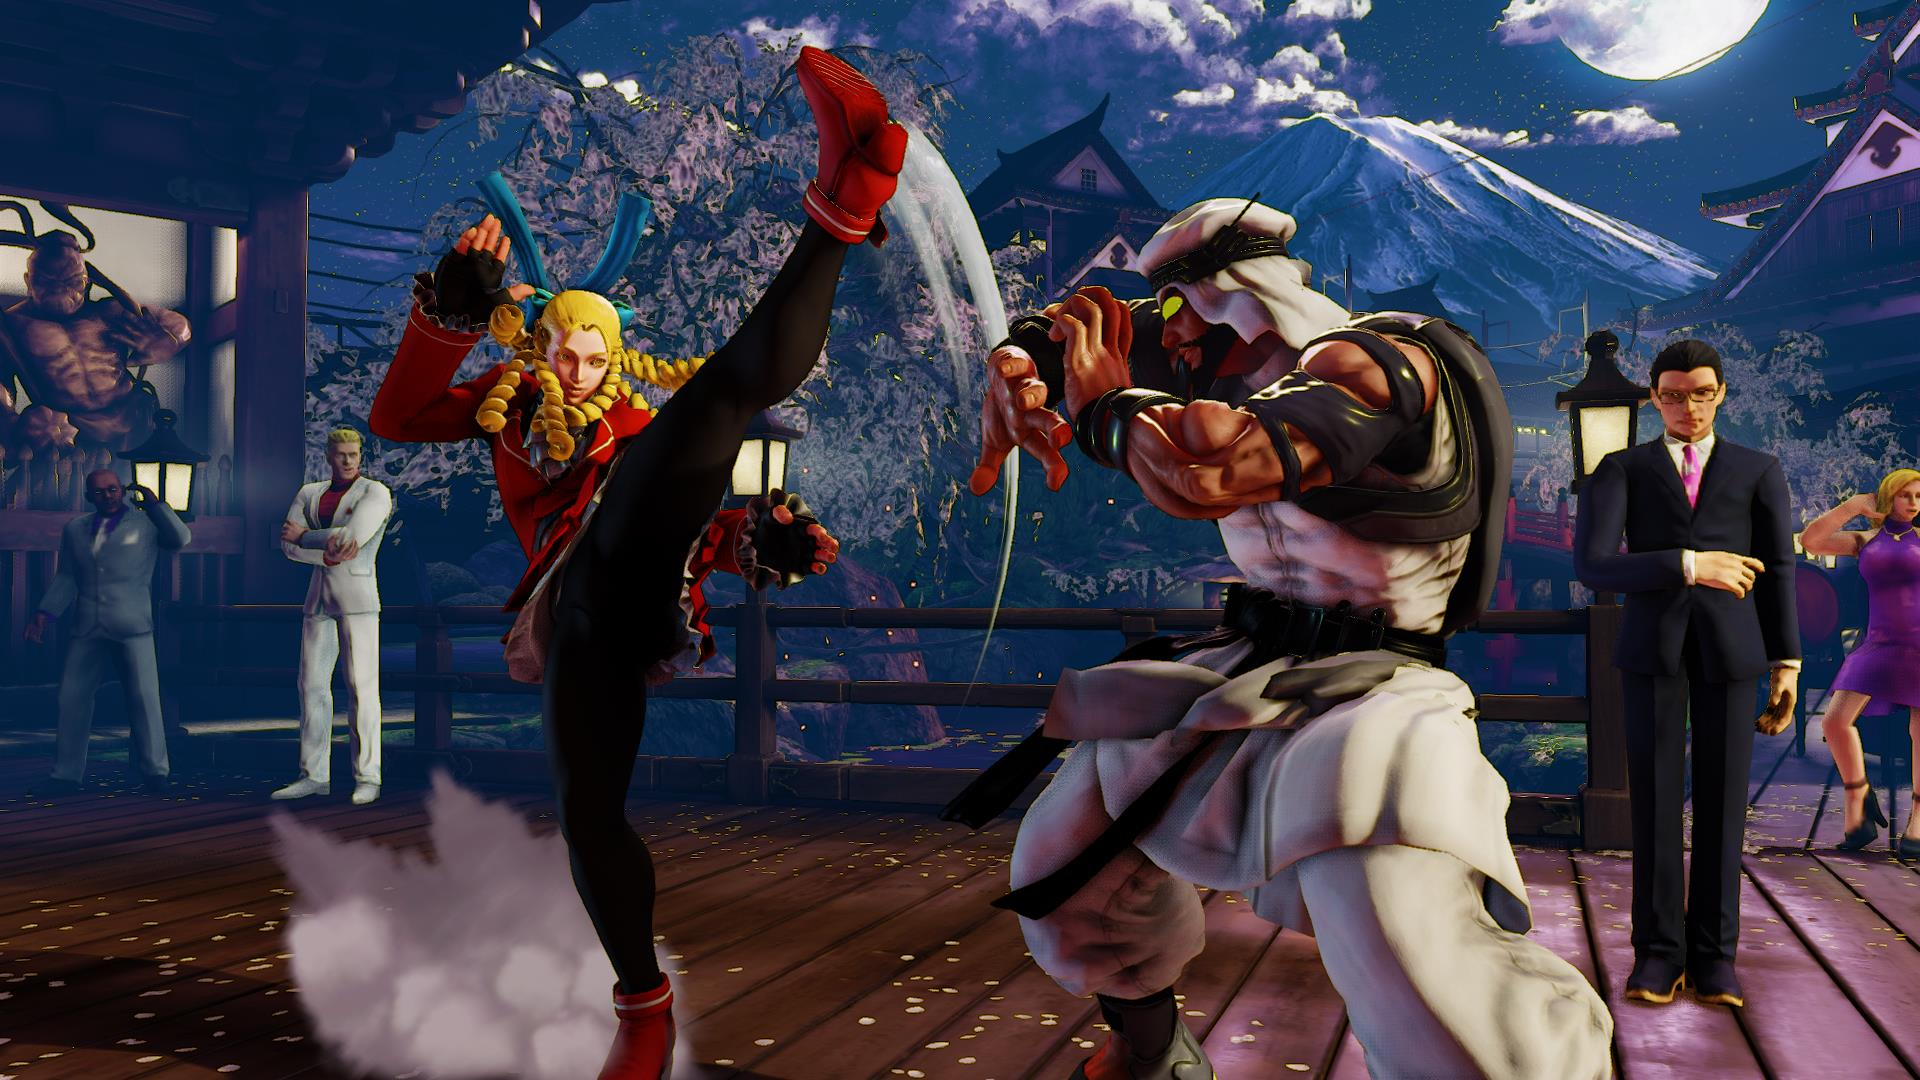 Karin Confirmed For Street Fighter 5, Watch Her In Action